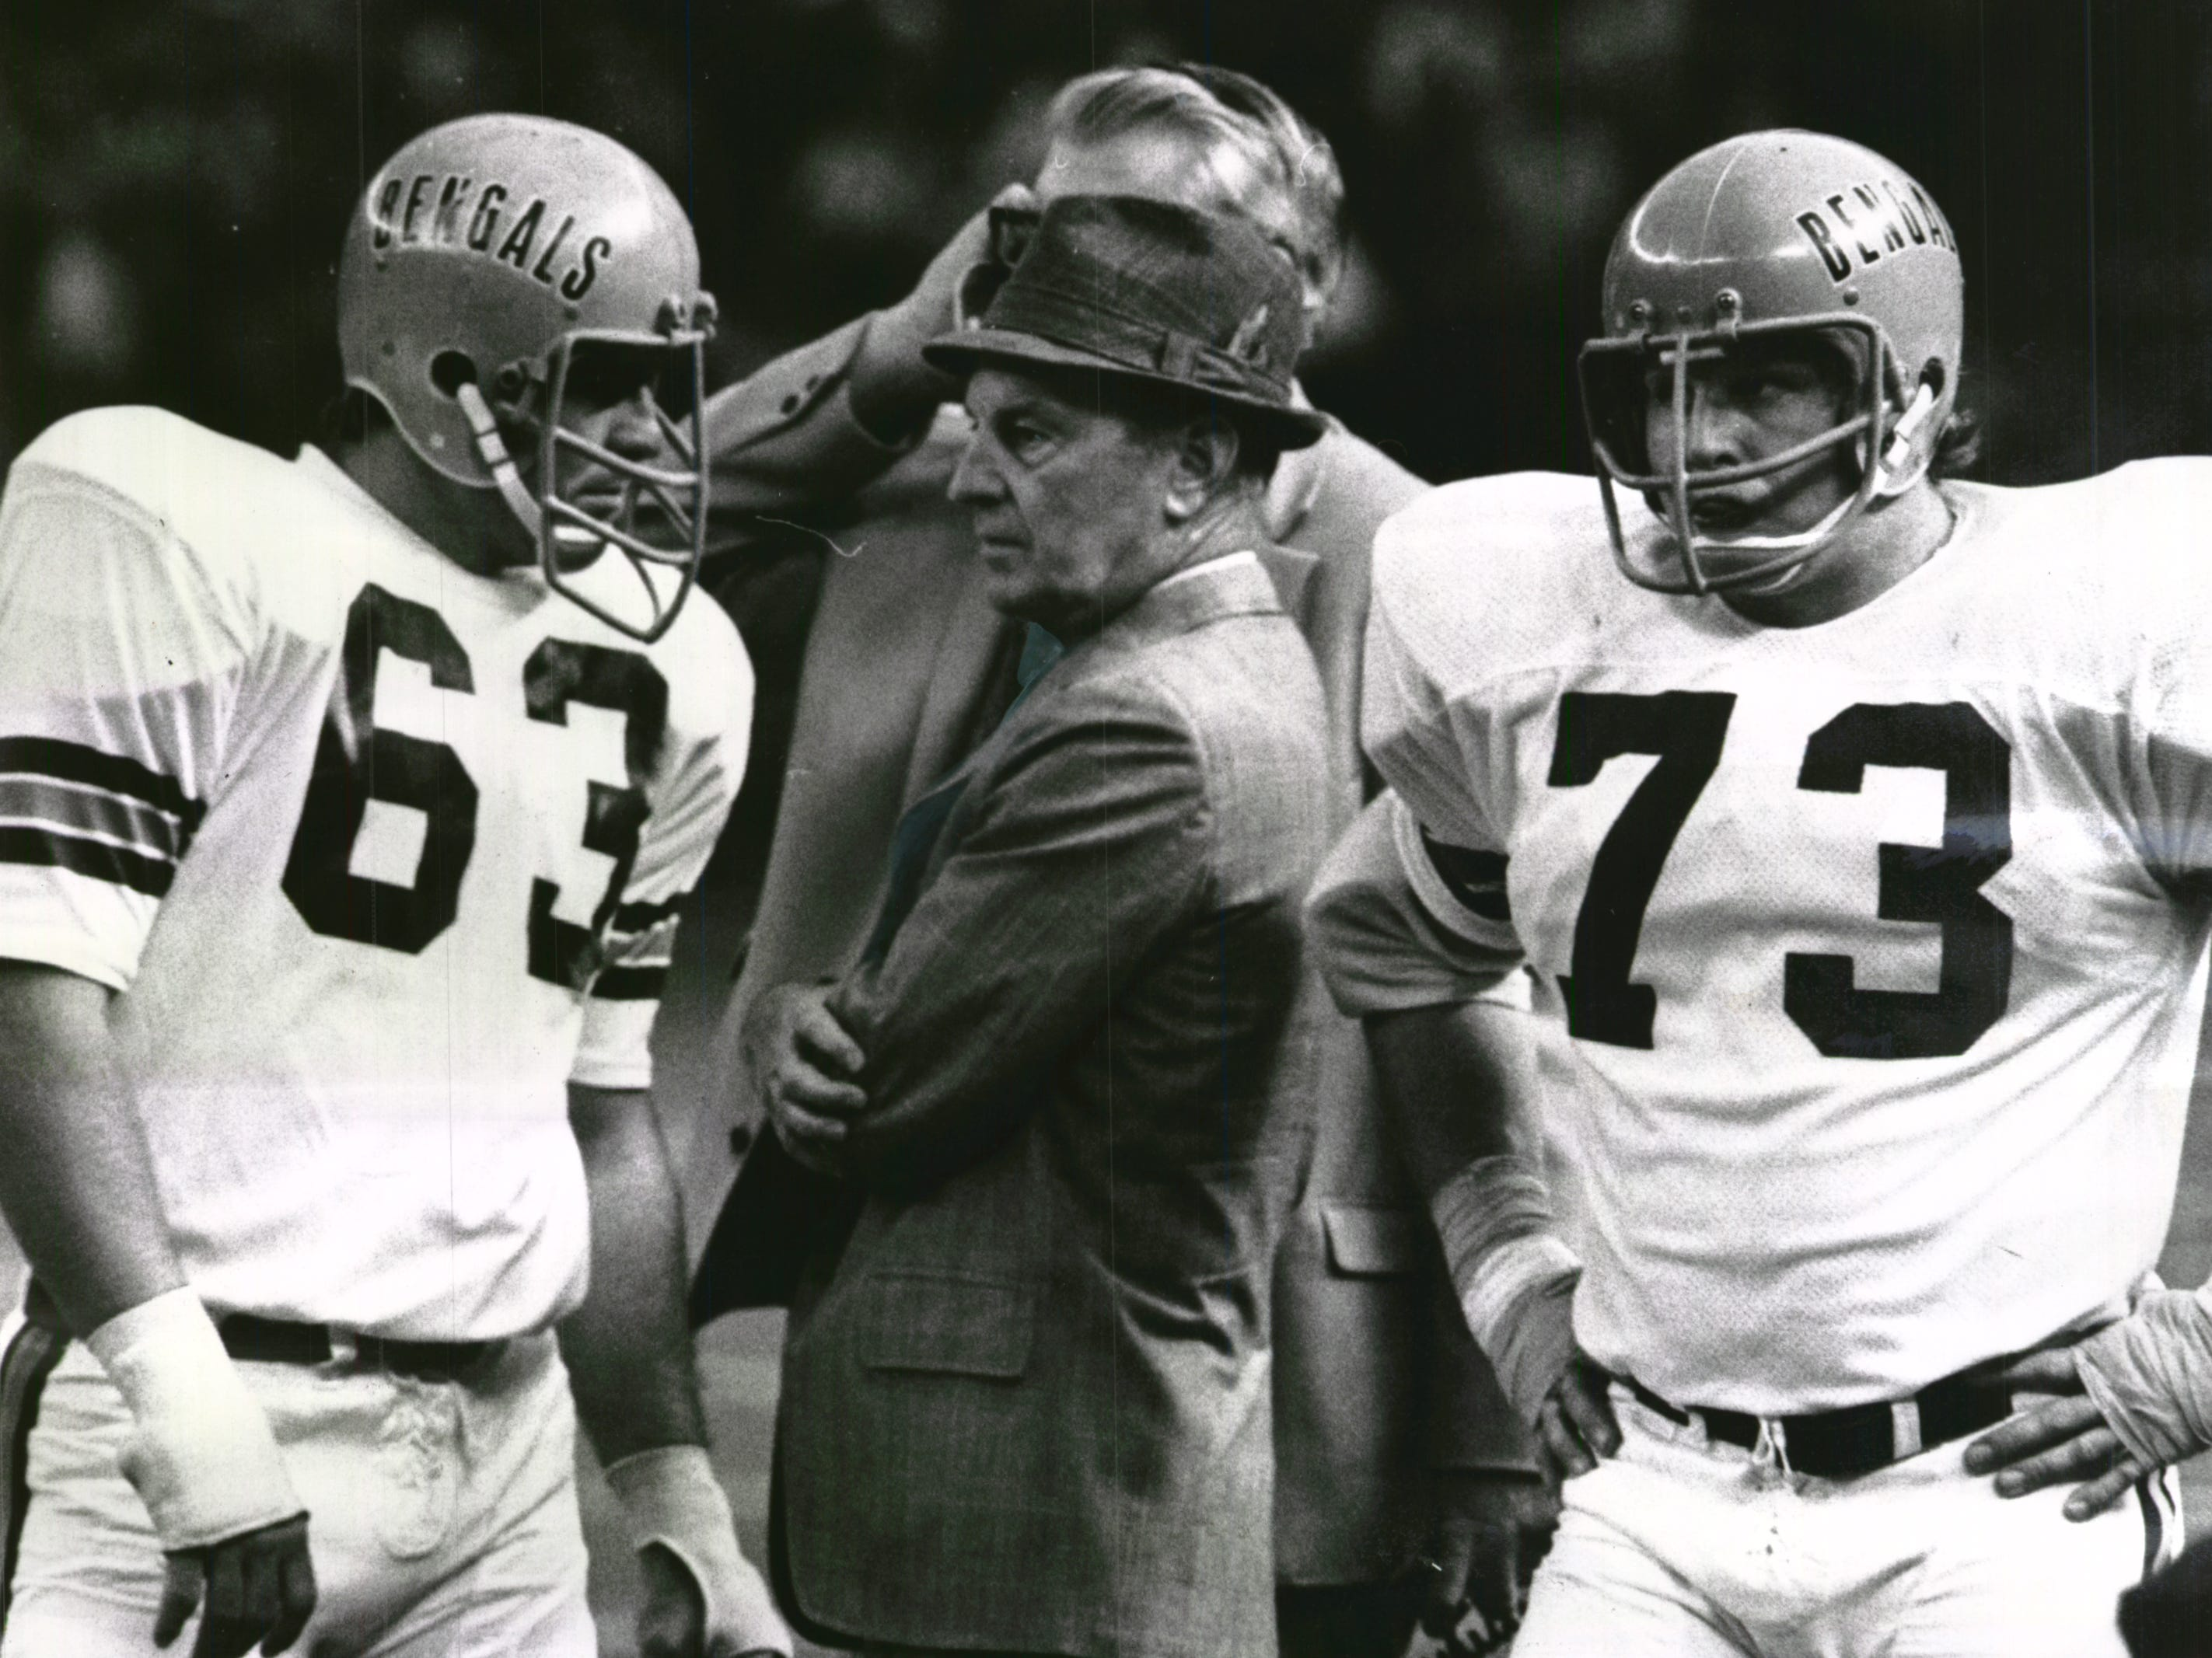 NOVEMBER 2, 1971: Messengers Await The Message...Bengal play-couriers Guy Dennis (63) and Pat Matson (73) wait while Paul Brown confers with aide Bill Johnson (behind Brown) to choose a play in Sunday's loss to Houston. The Enquirer/Fred Straub